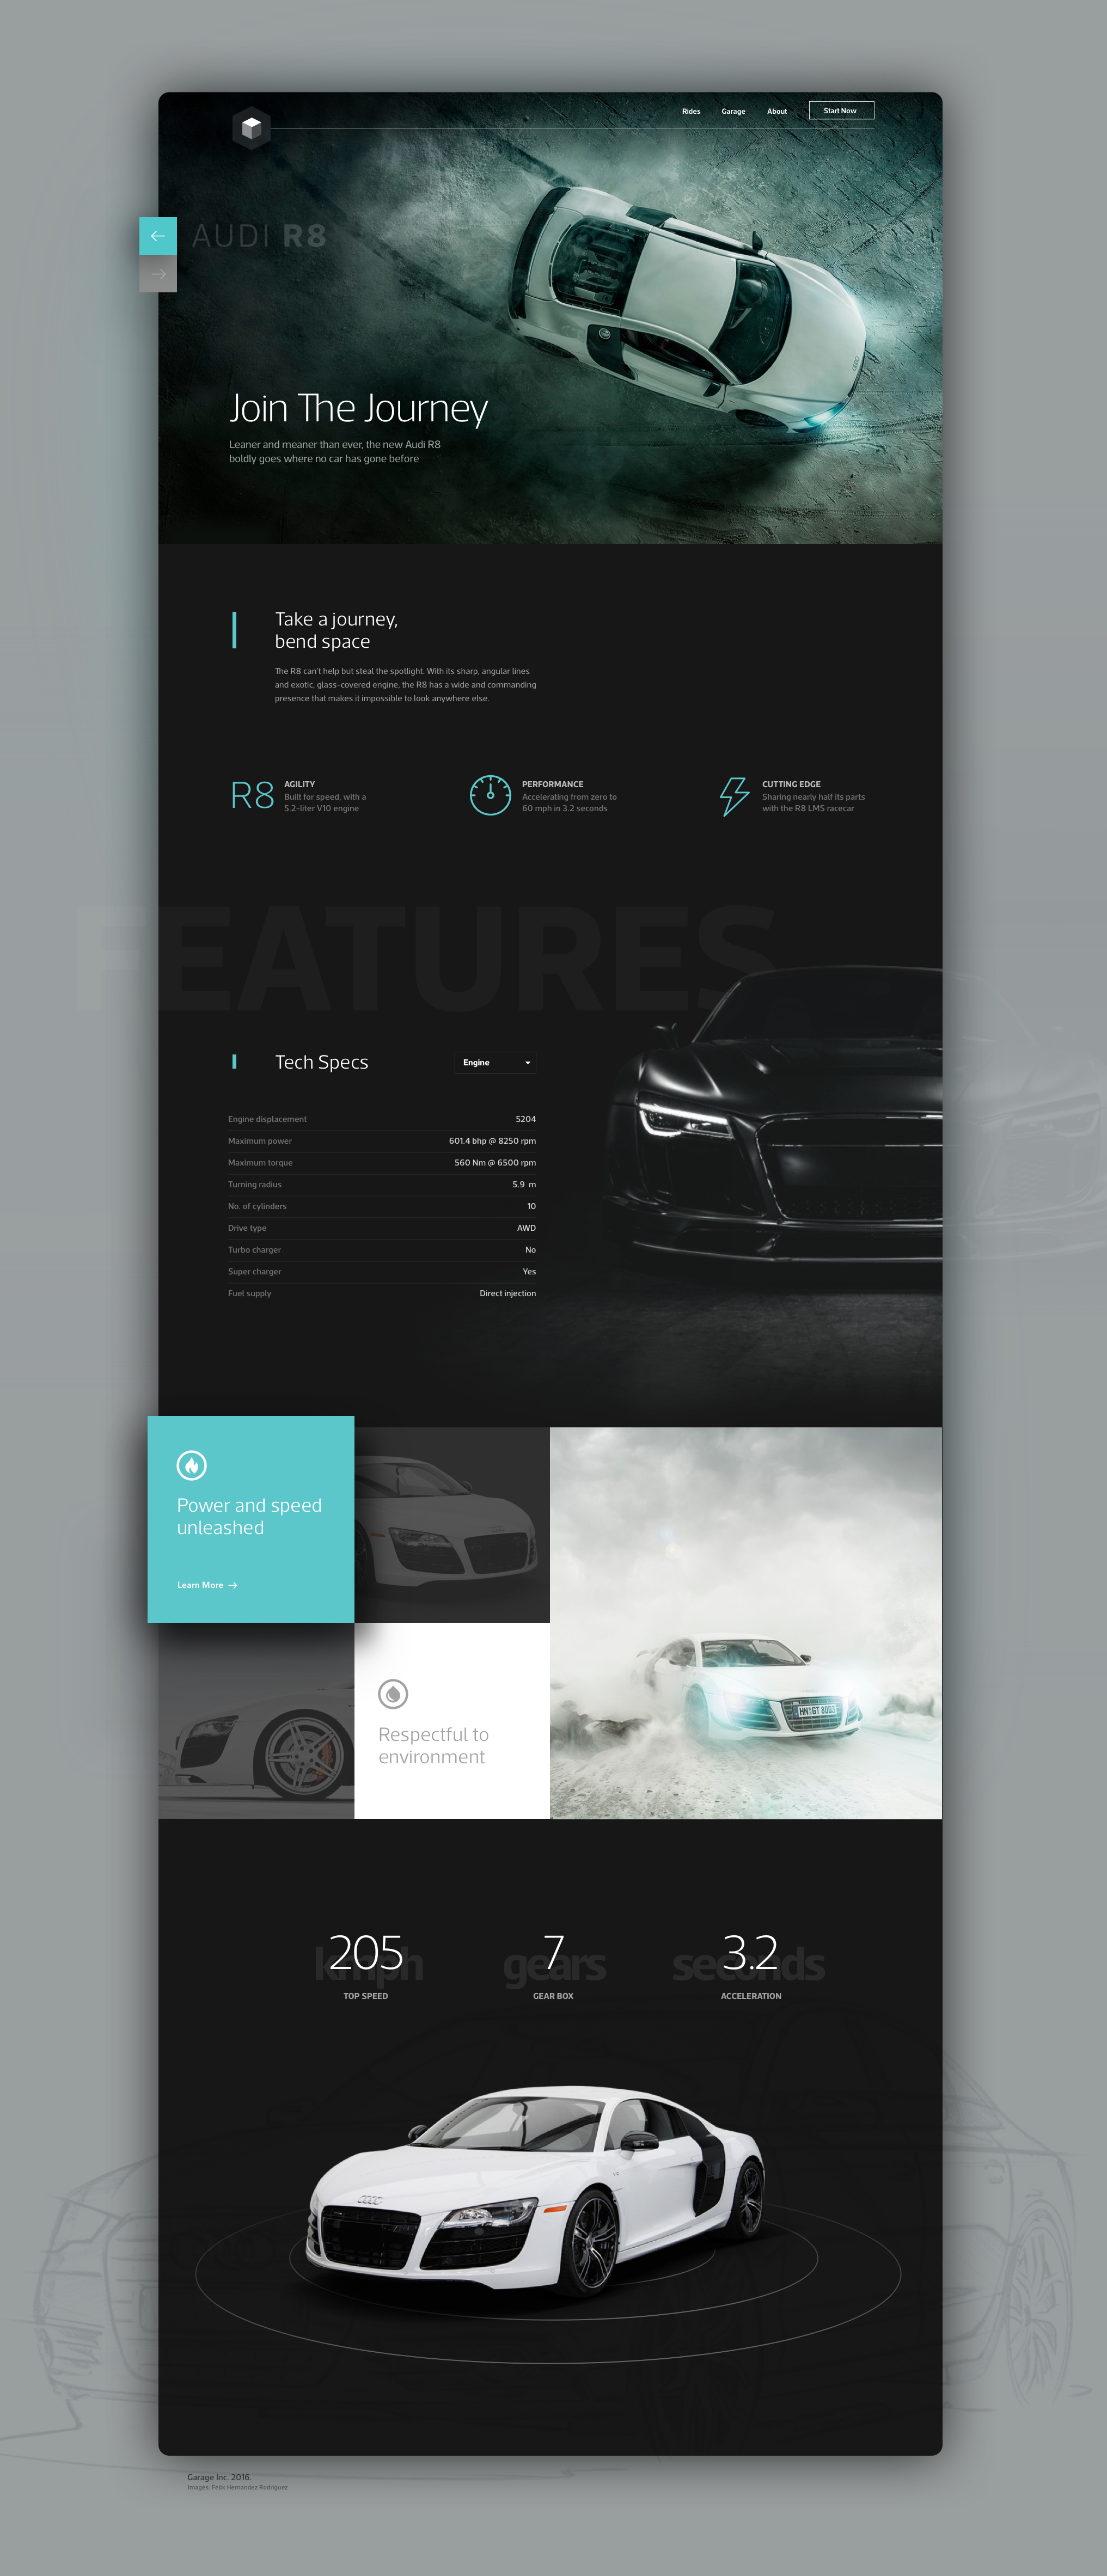 Hey Guys A New Layout Web Exploration From Spelar Check It Out New Products Layout App Design Inspiration Web Layout Design Website Design Inspiration